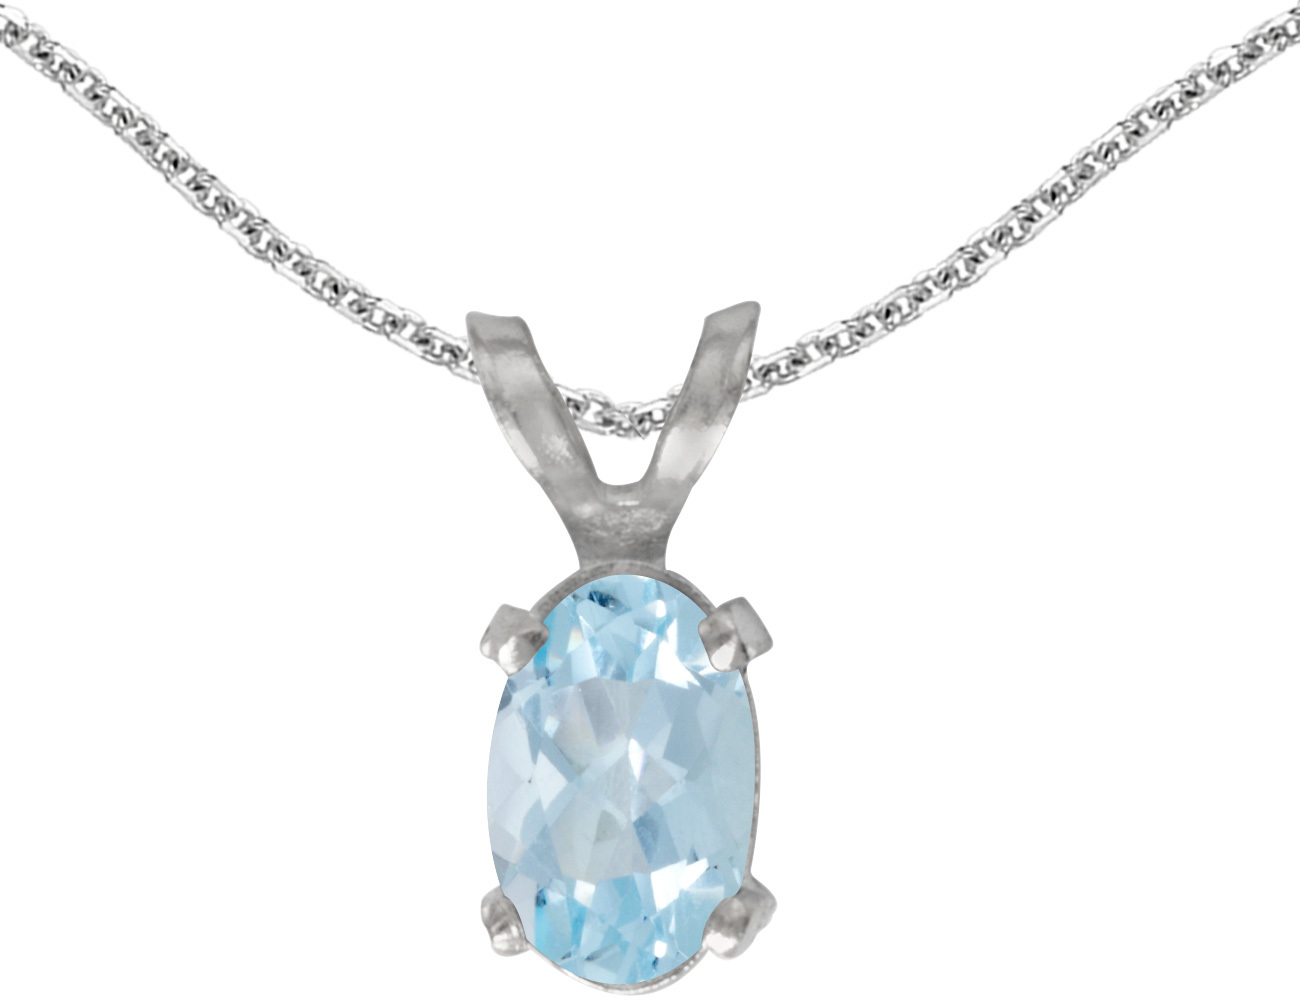 14k White Gold Oval Aquamarine Pendant (Chain NOT included)